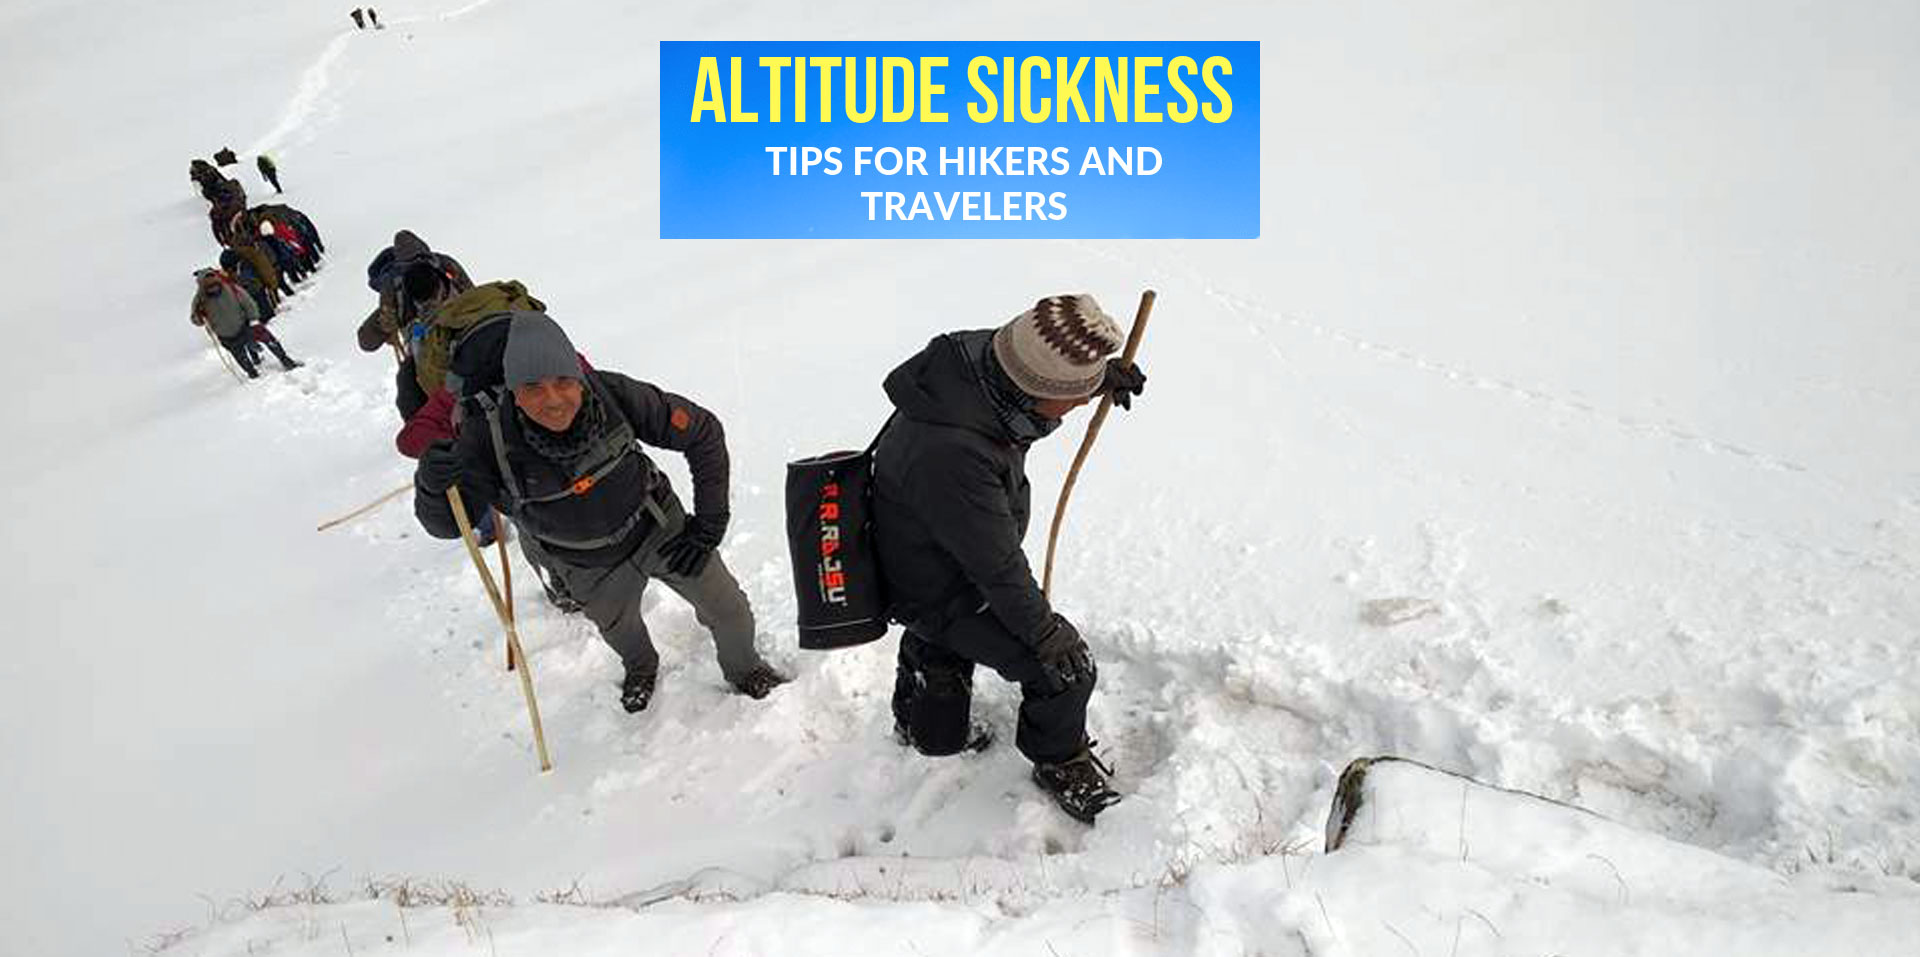 How to Cater Altitude Sickness